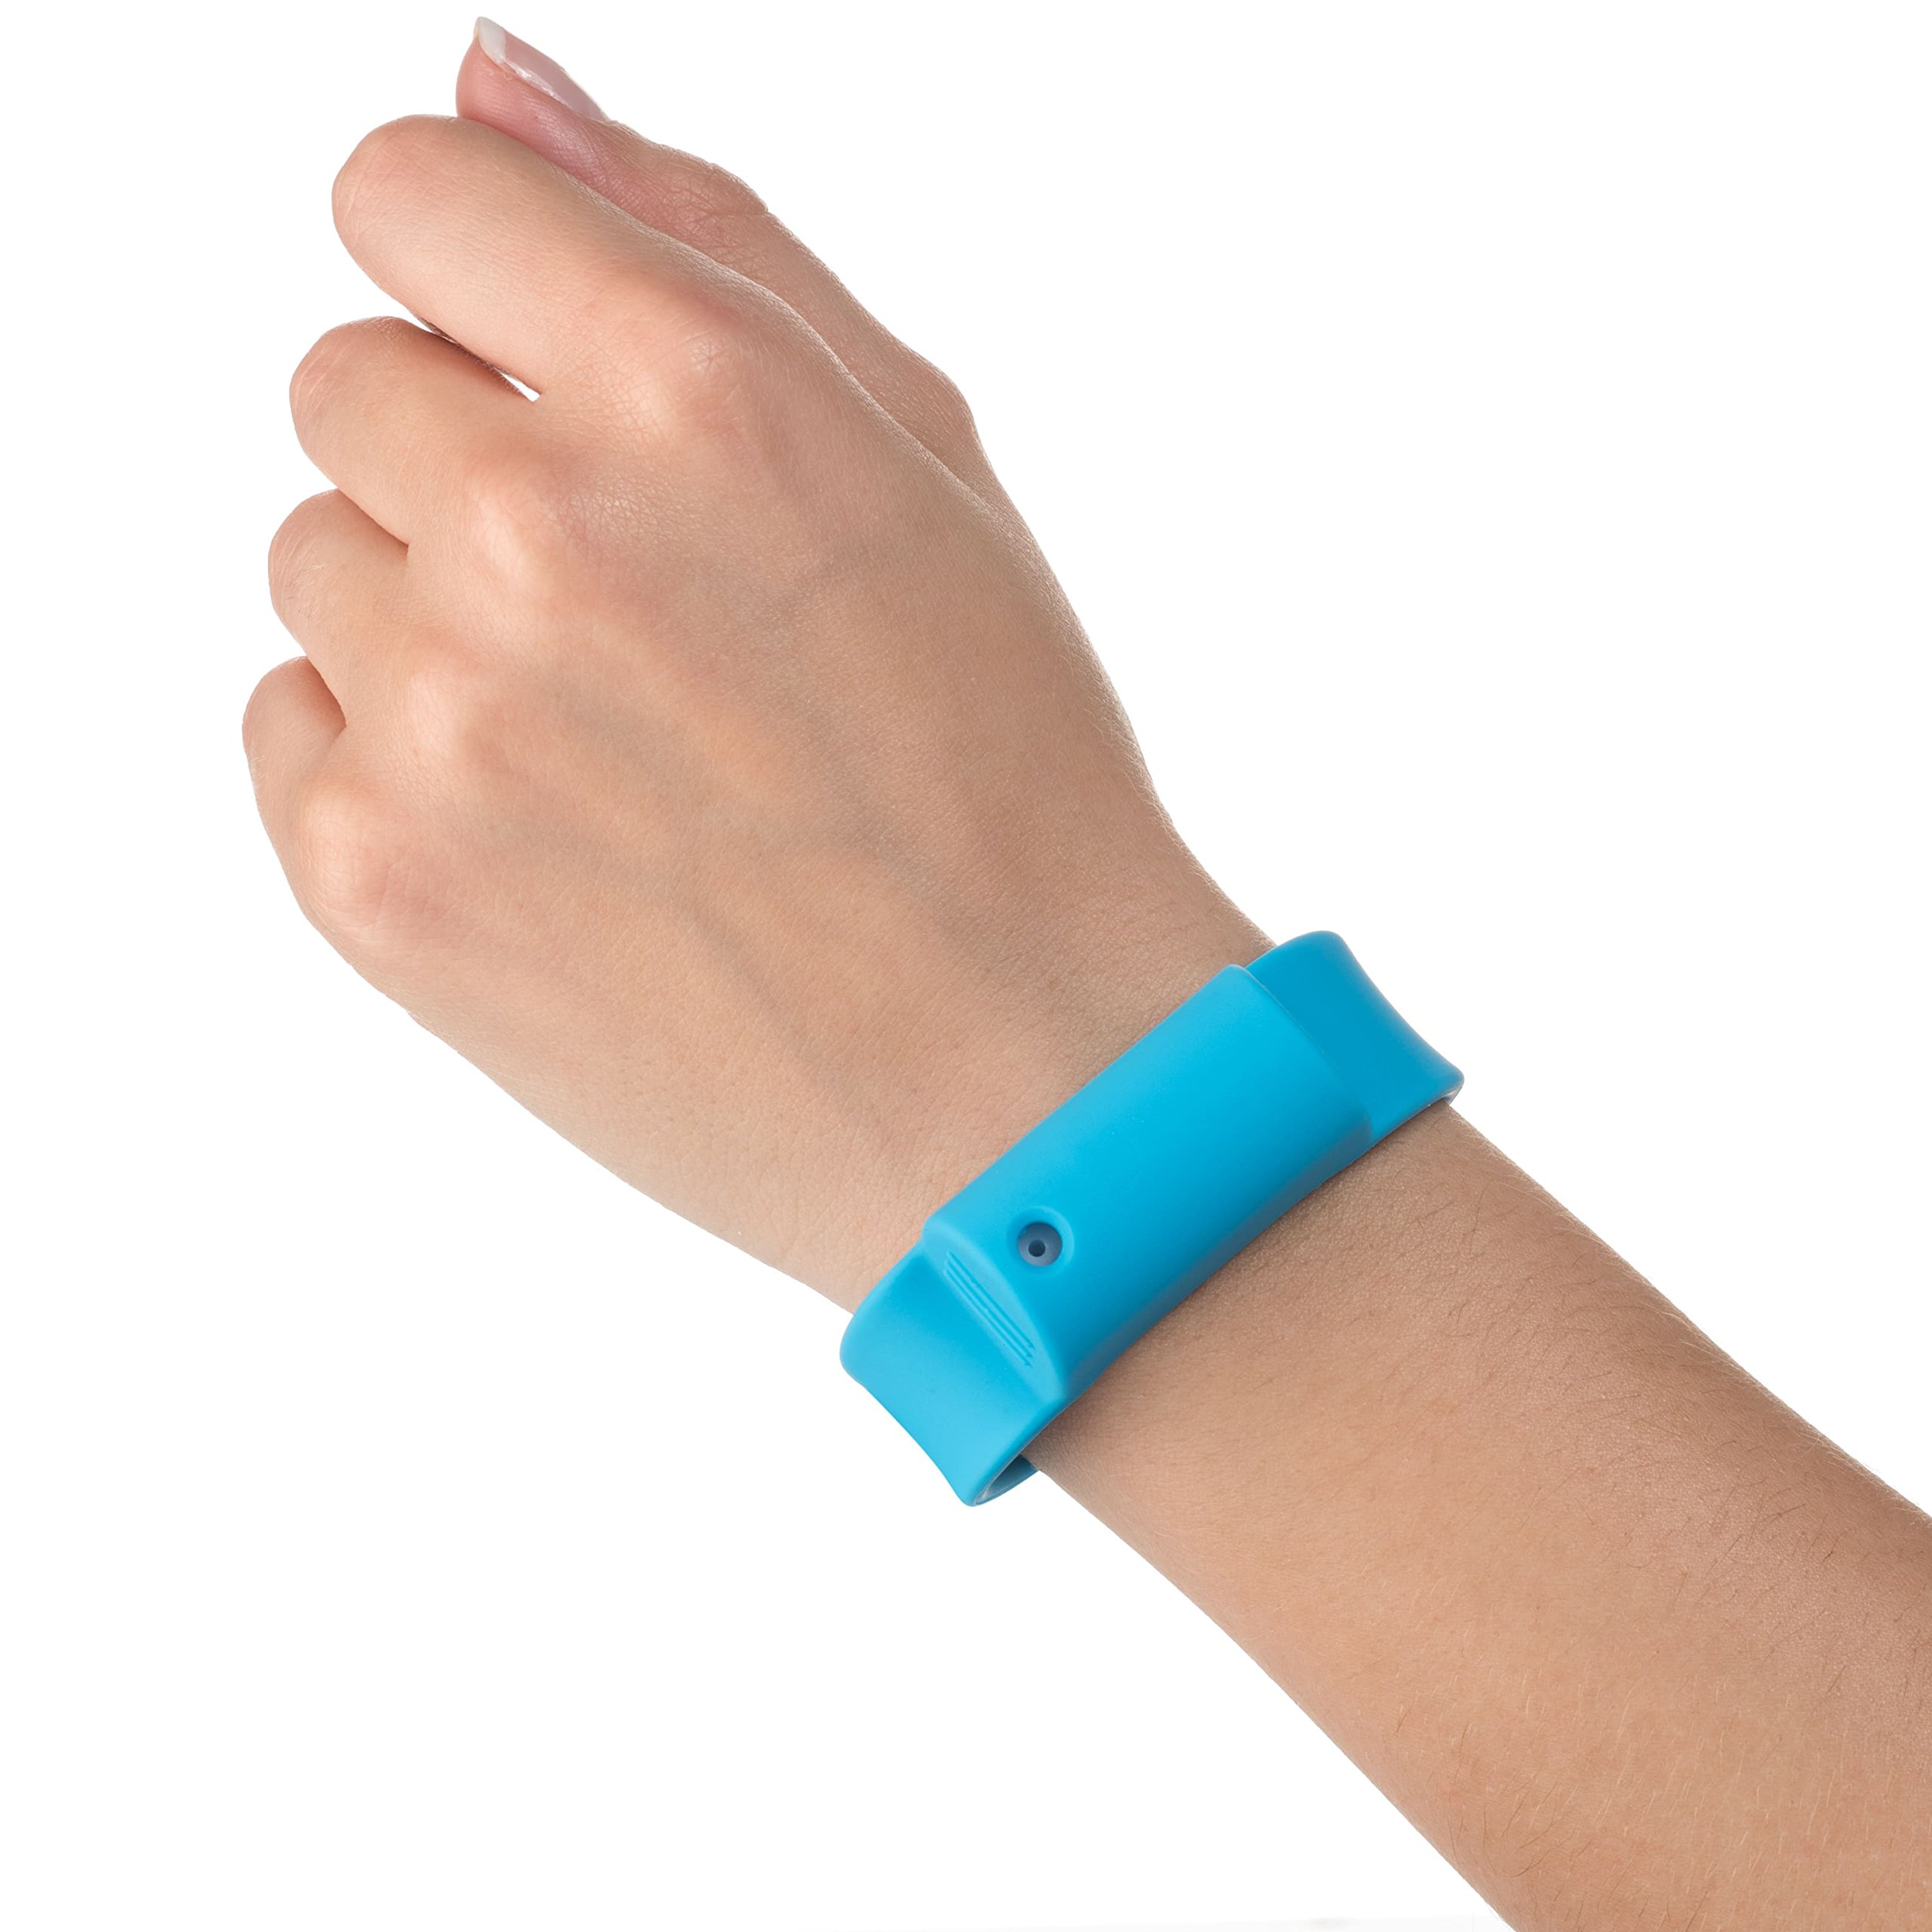 Little Viper Pepper Spray Bracelet, Adjustable Silicone Band- Blue, Lightweight, Discreet and Easy Access For Quick Response to Attack, Contains 3-6 Bursts of 10% OC, Cannot Ship to MA or NY